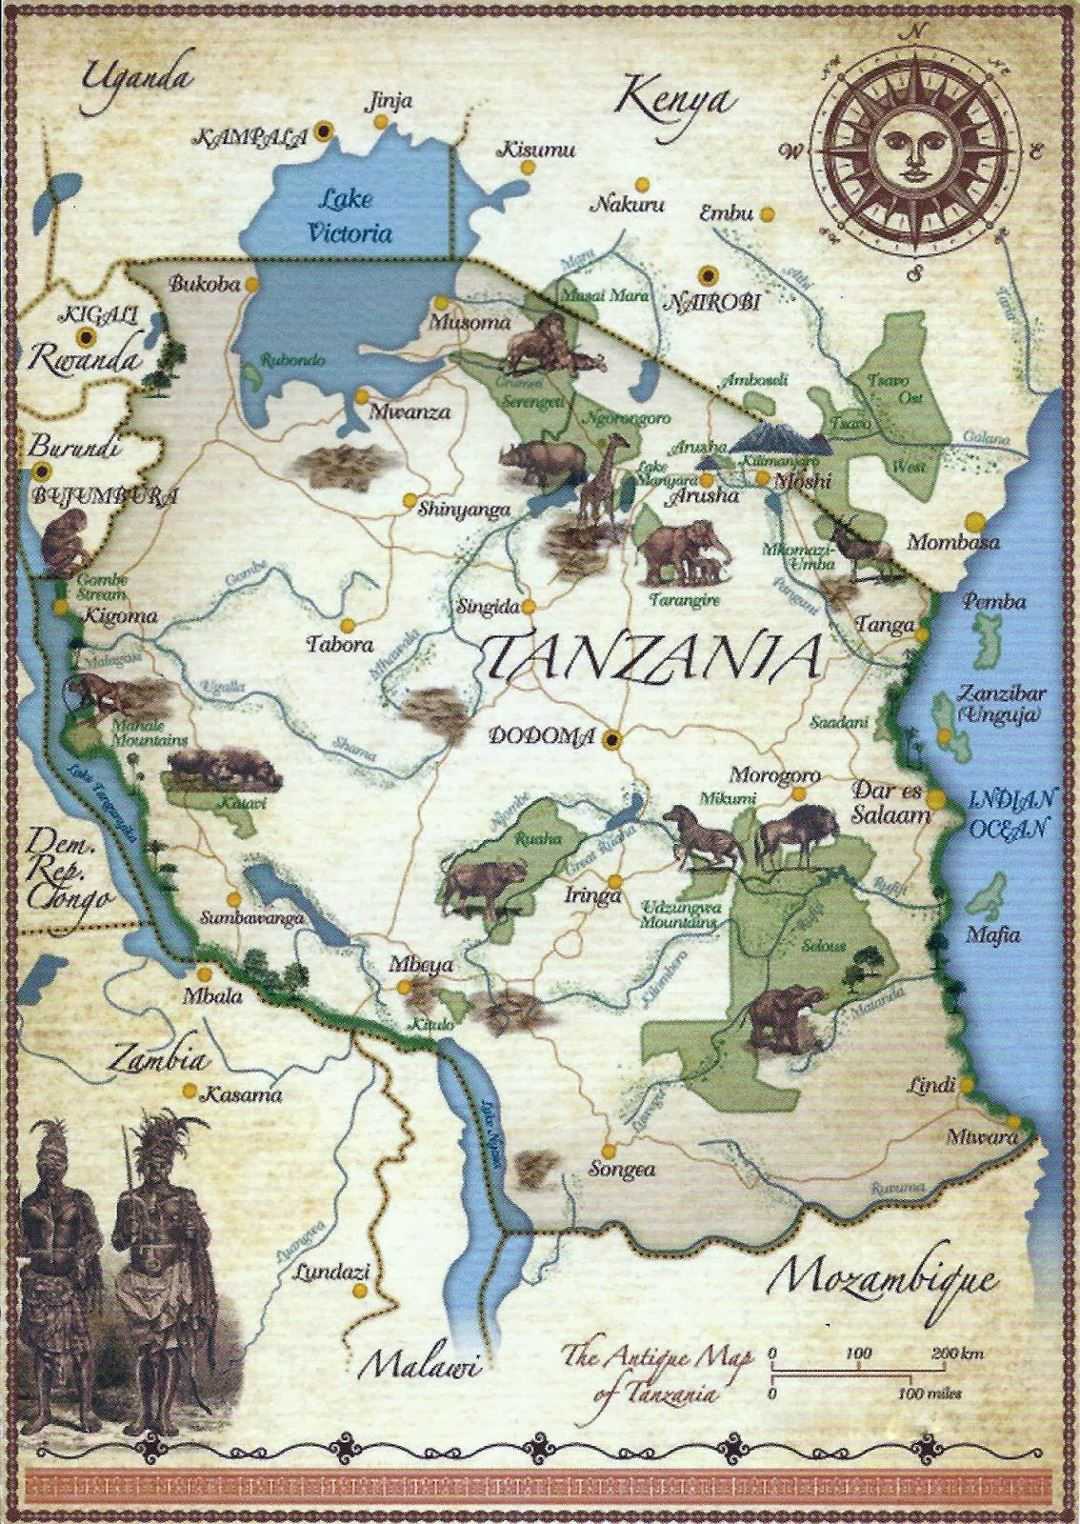 Detailed tourist illustrated map of Tanzania